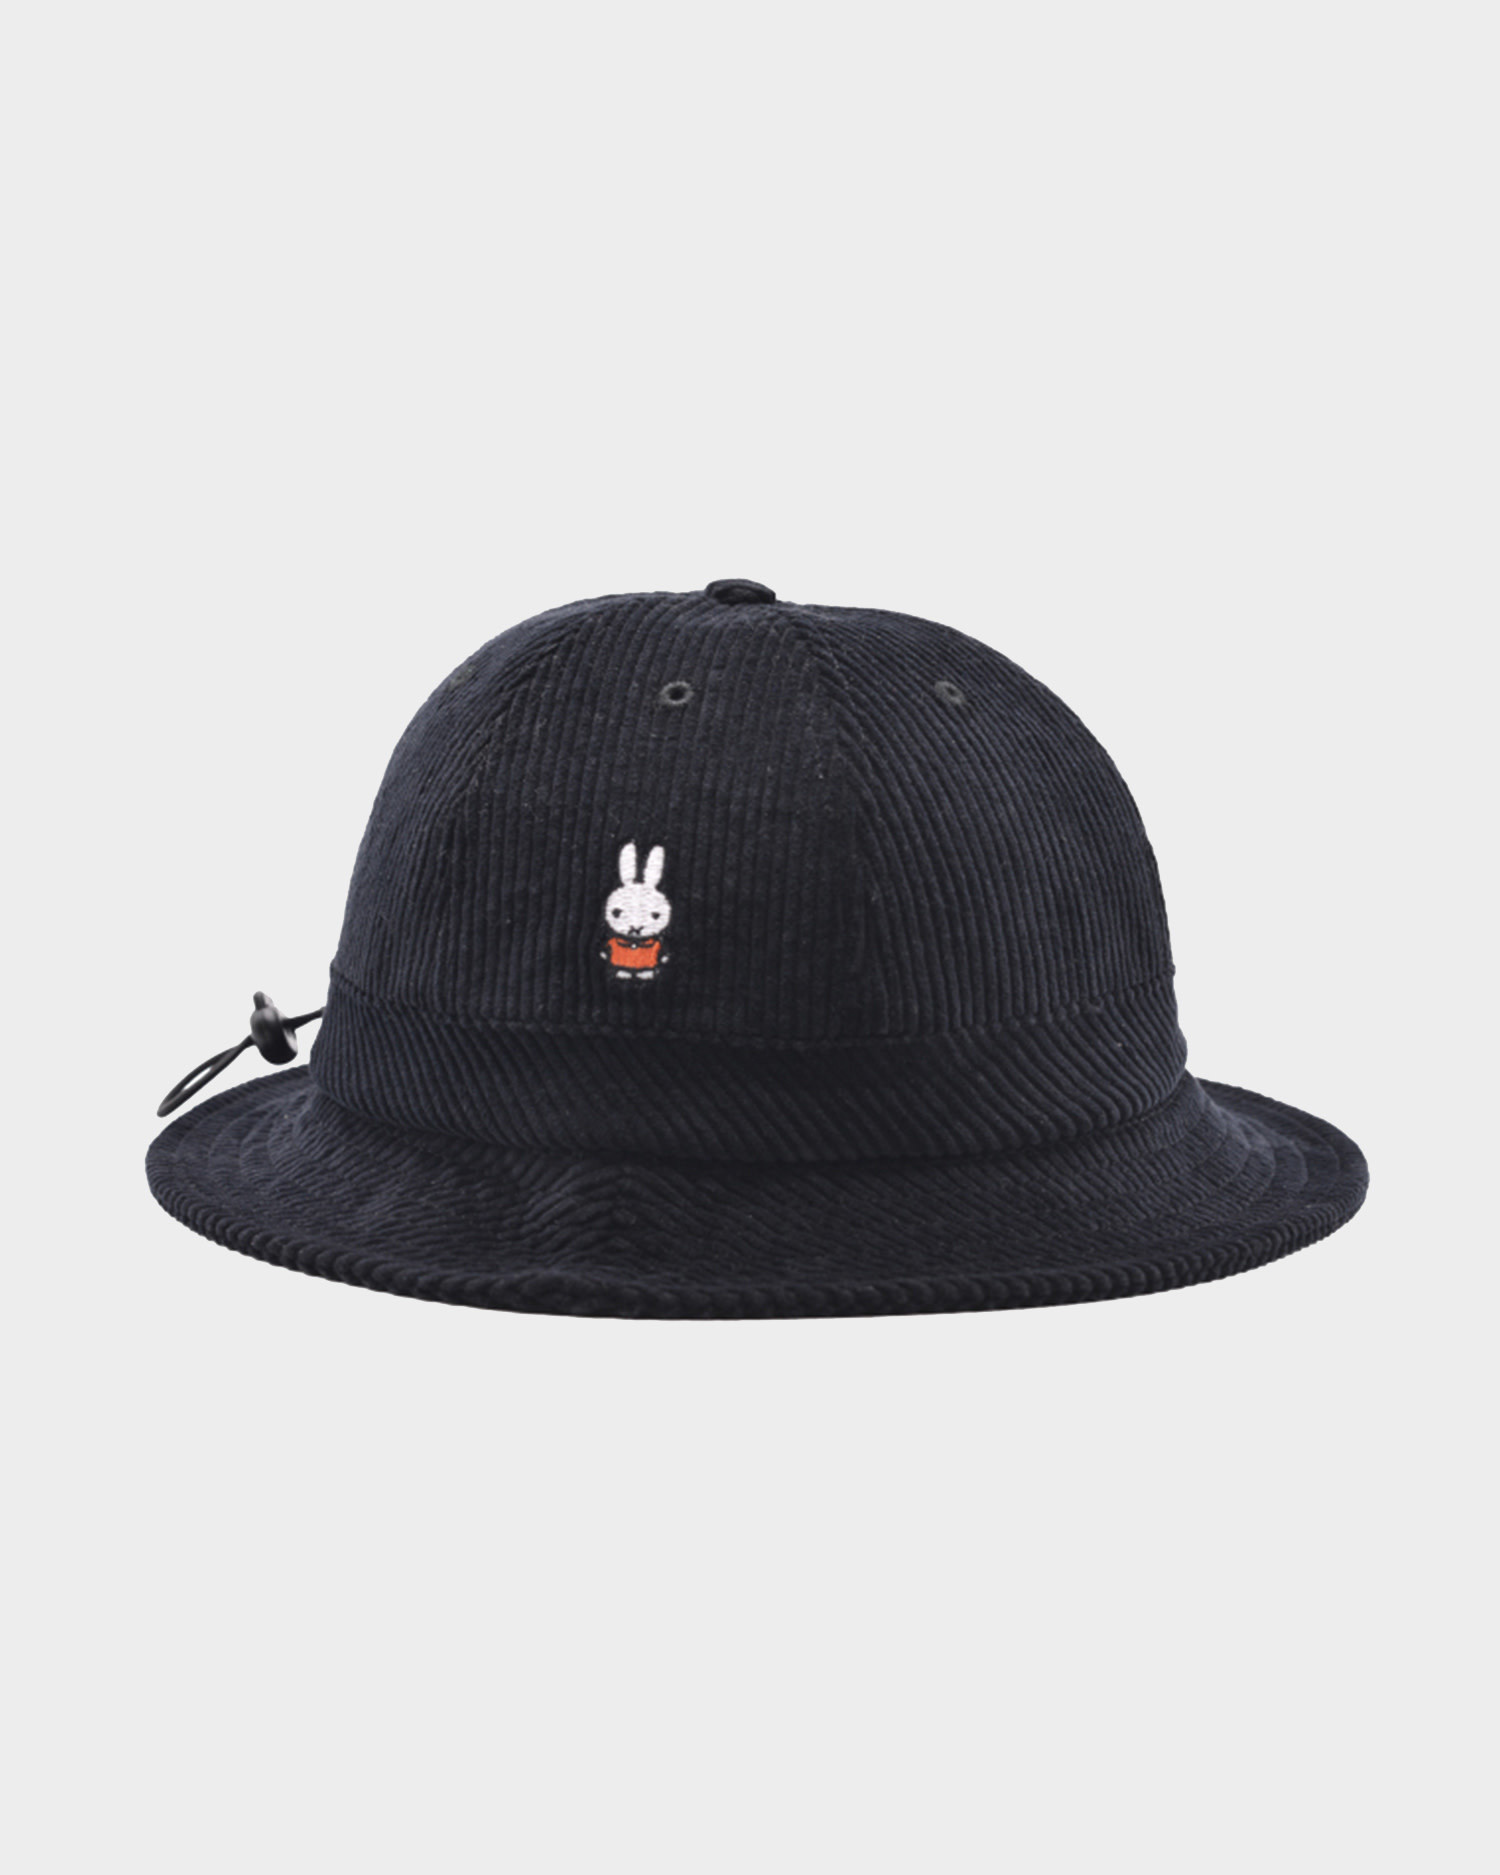 Pop Trading Co X Miffy Cord Bell Hat